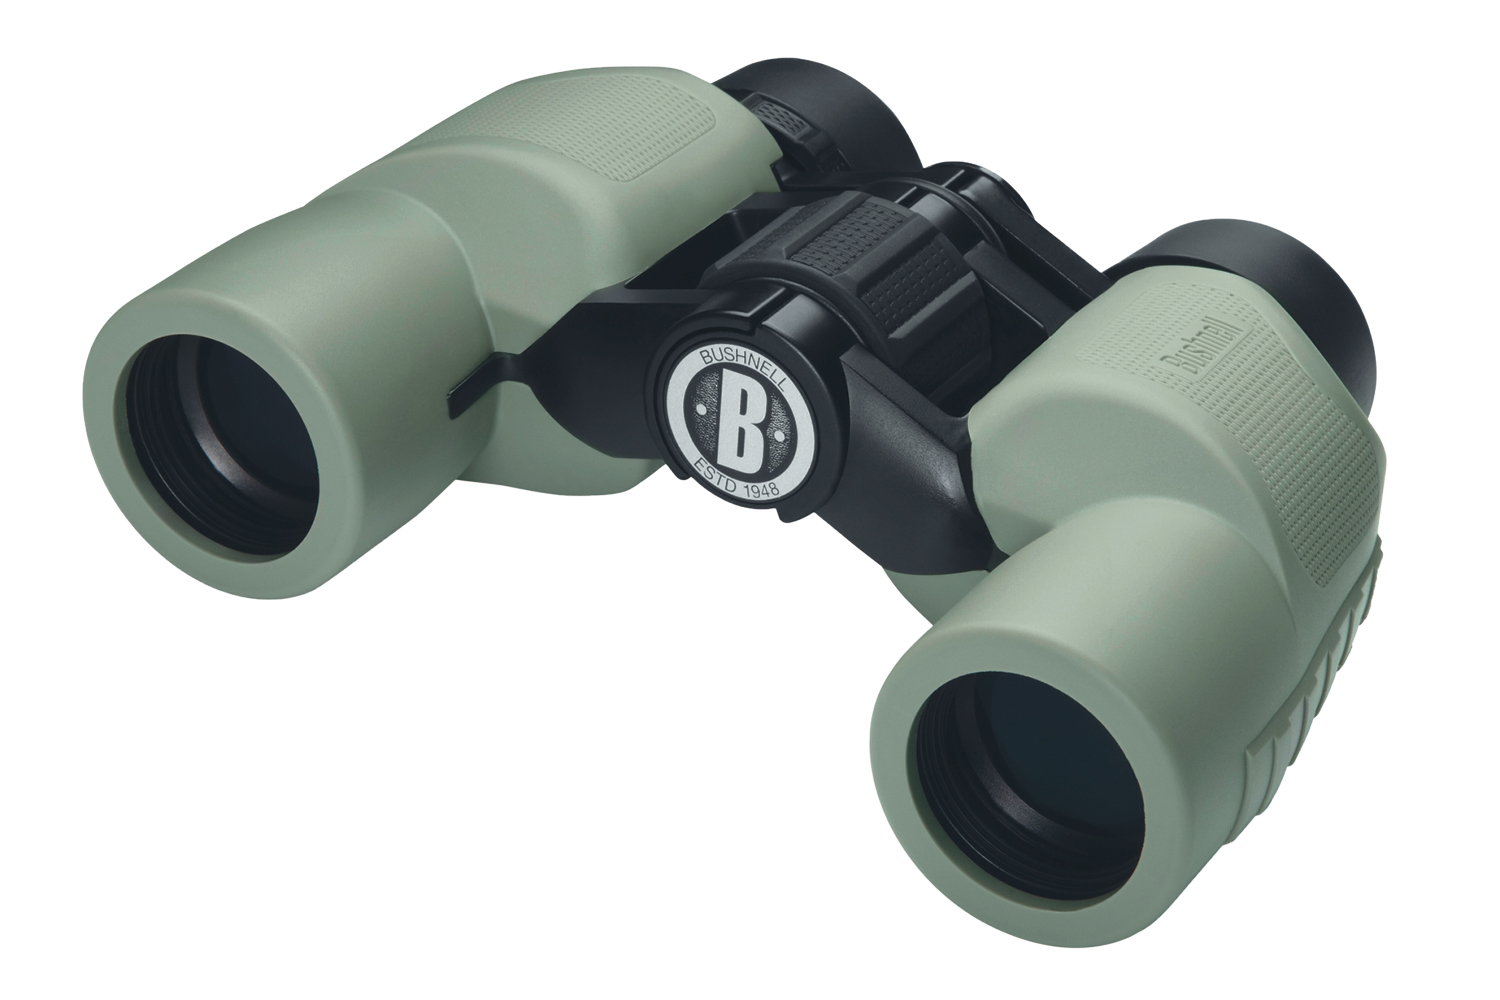 Бинокль Bushnell NatureView 6x30 бинокль navigator 10 30x60 зеленый